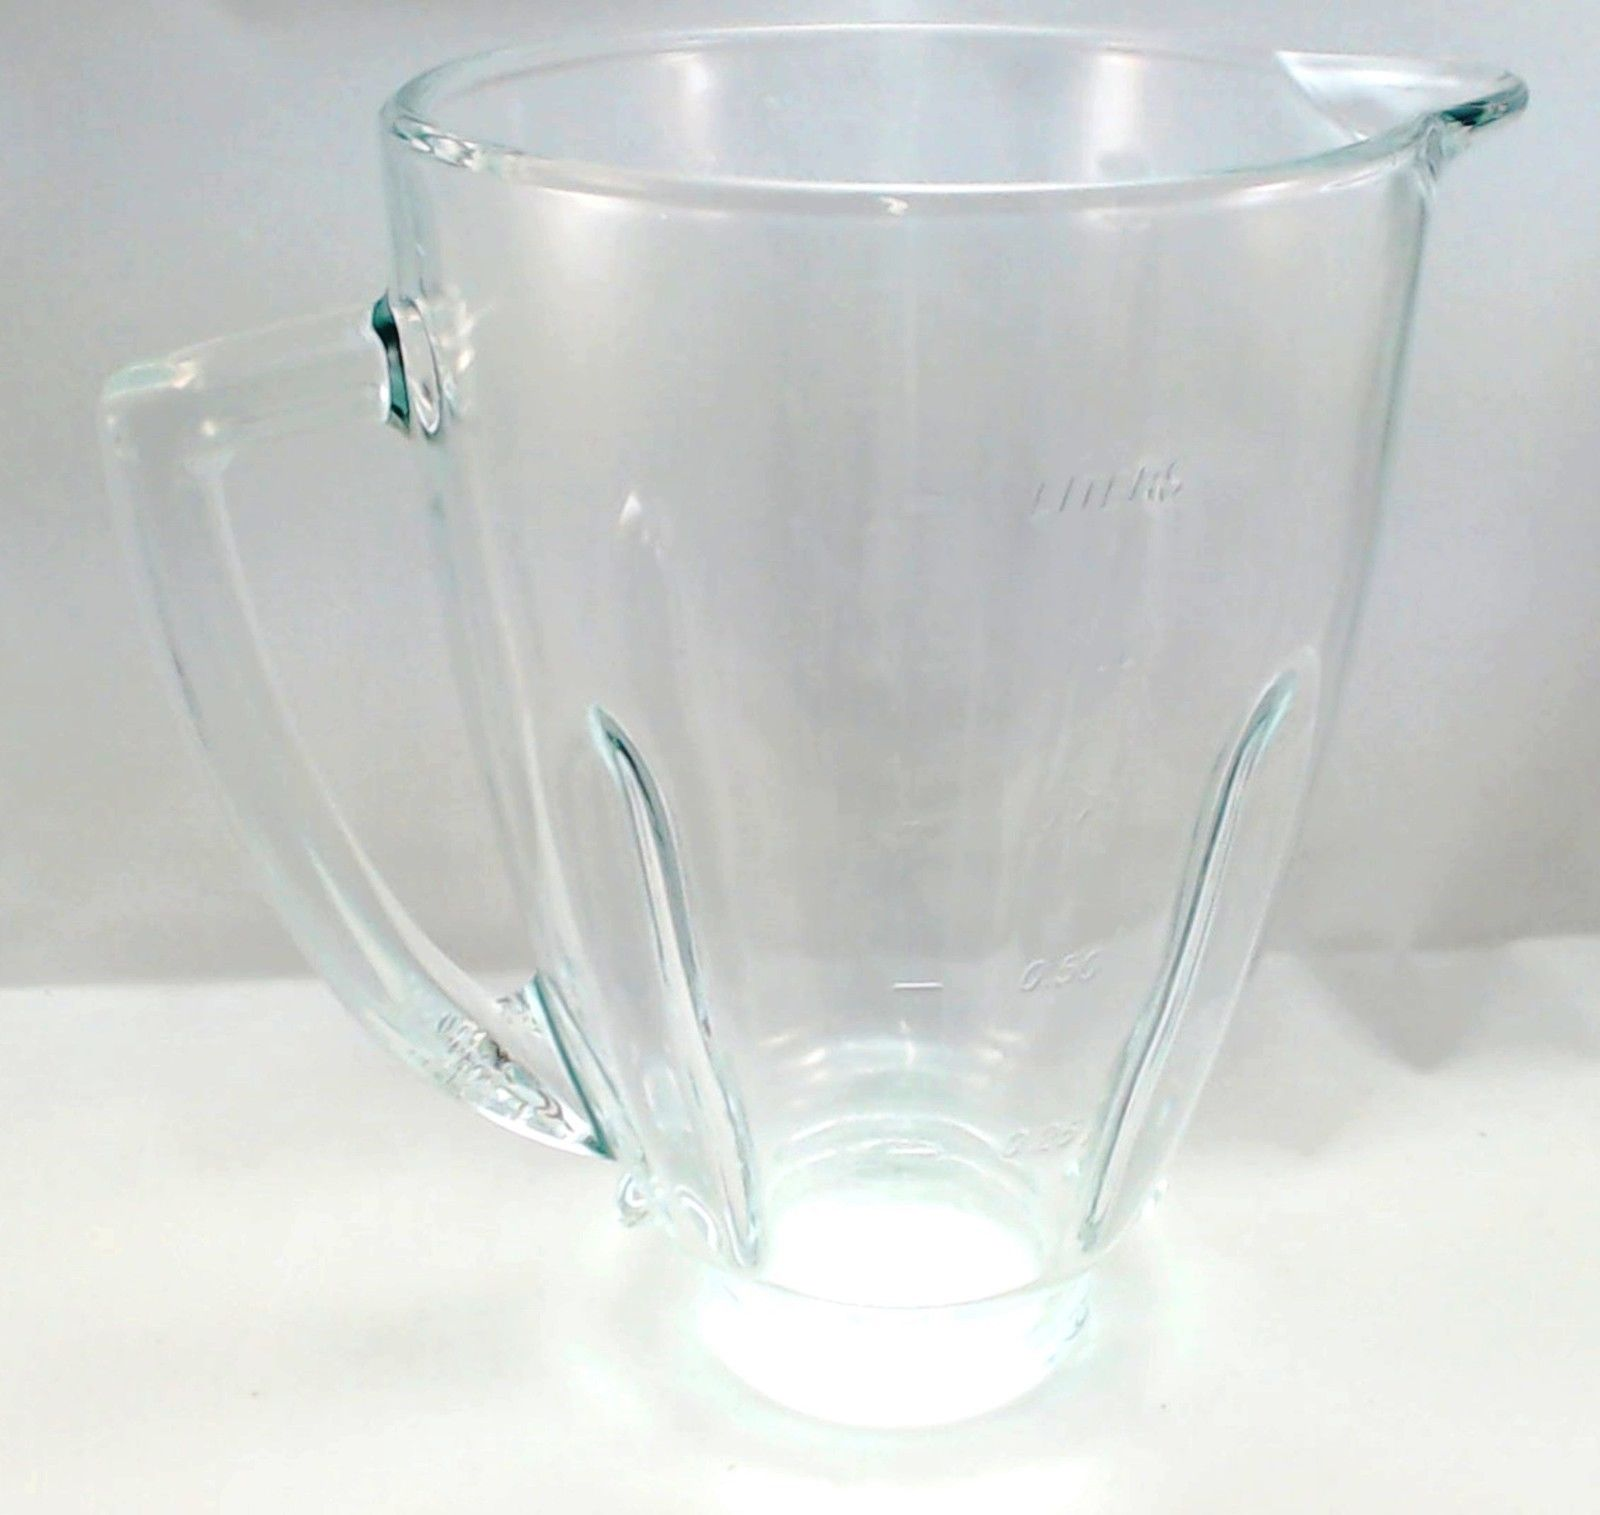 Sunbeam / Oster Glass Blender Jar, 083852, 124461-000-000